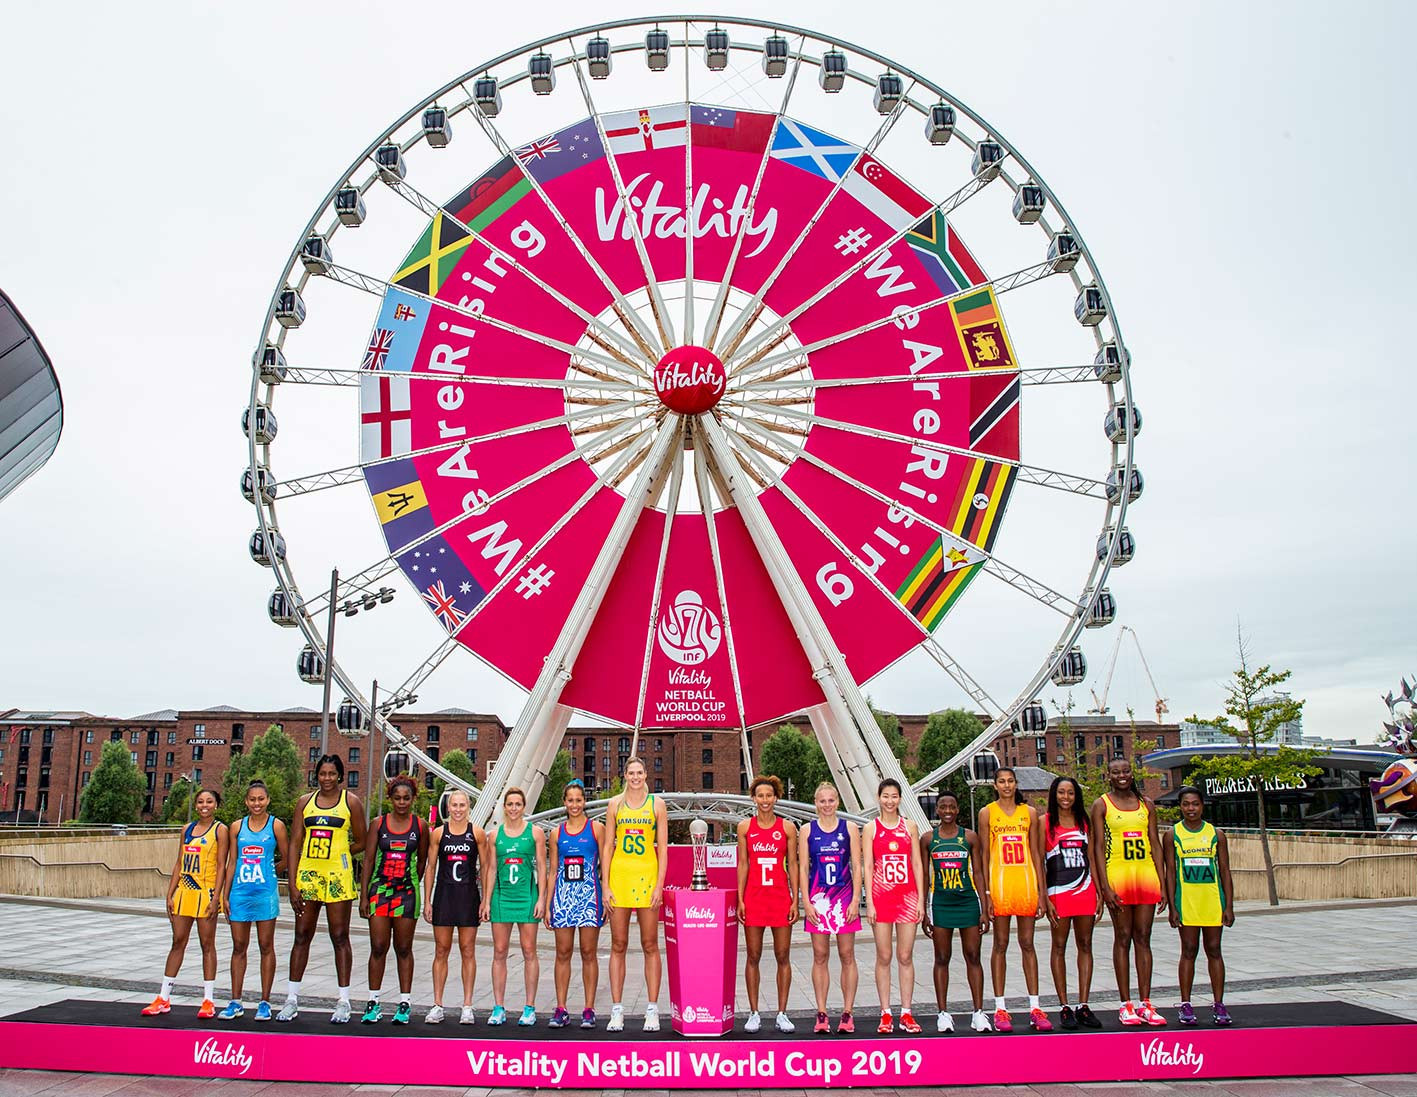 Stage set for Netball World Cup in Liverpool as hosts bid for first title